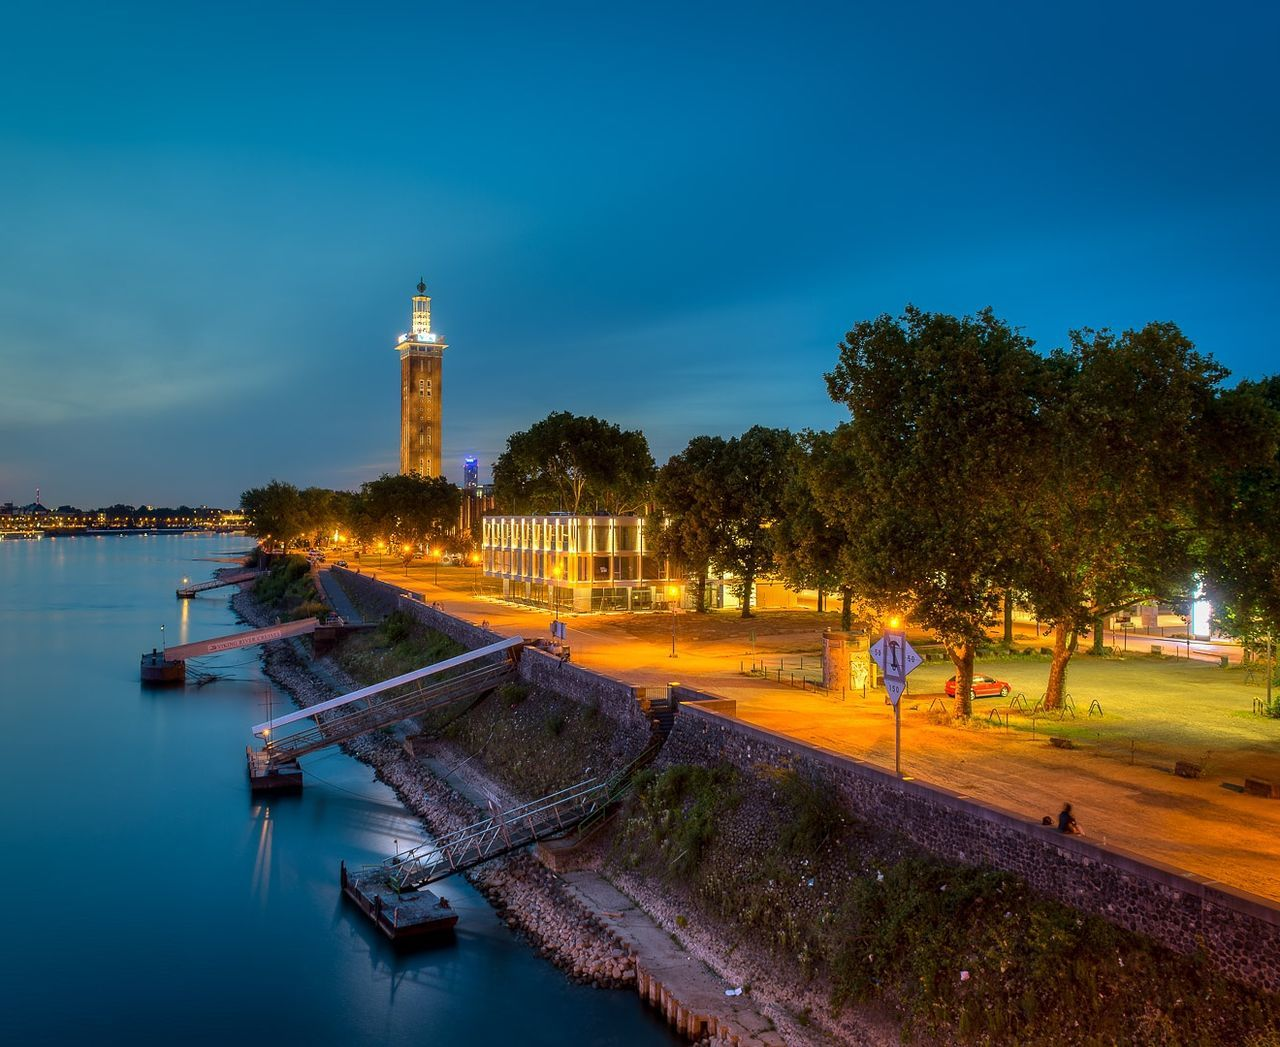 architecture, tree, built structure, building exterior, water, sky, outdoors, real people, illuminated, night, lighthouse, nautical vessel, nature